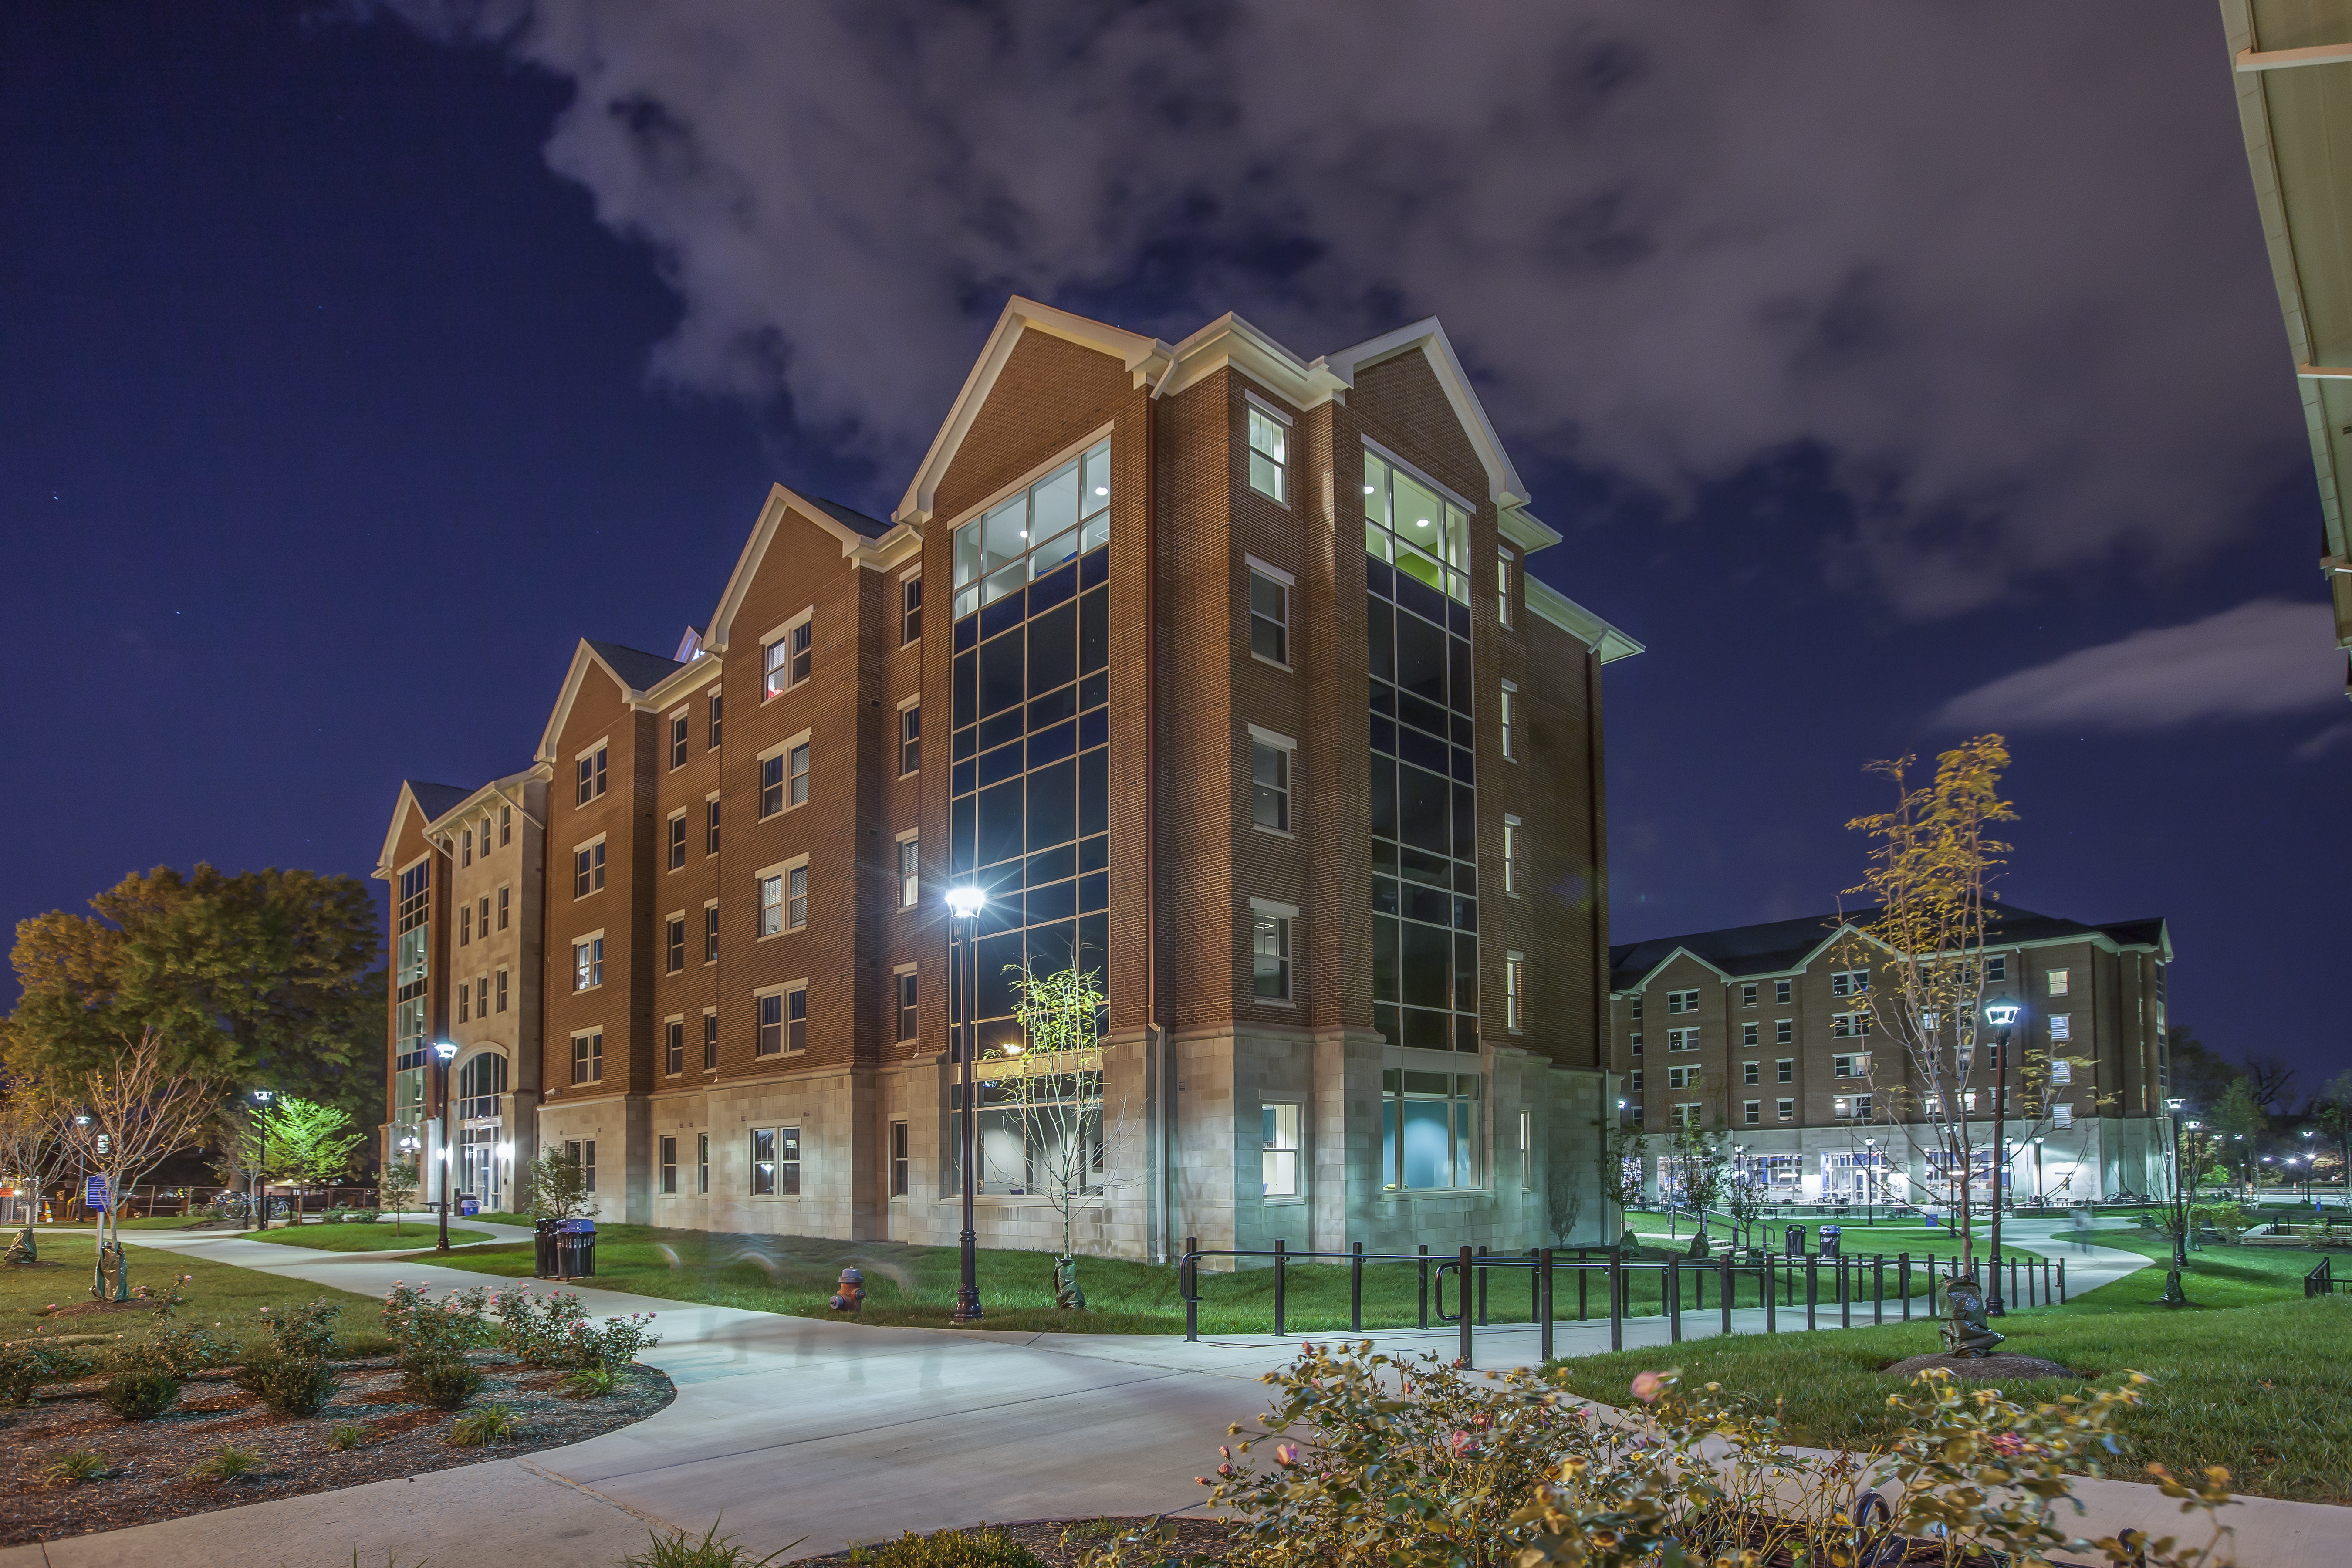 Haggin Hall at night with breathtaking views of central campus.